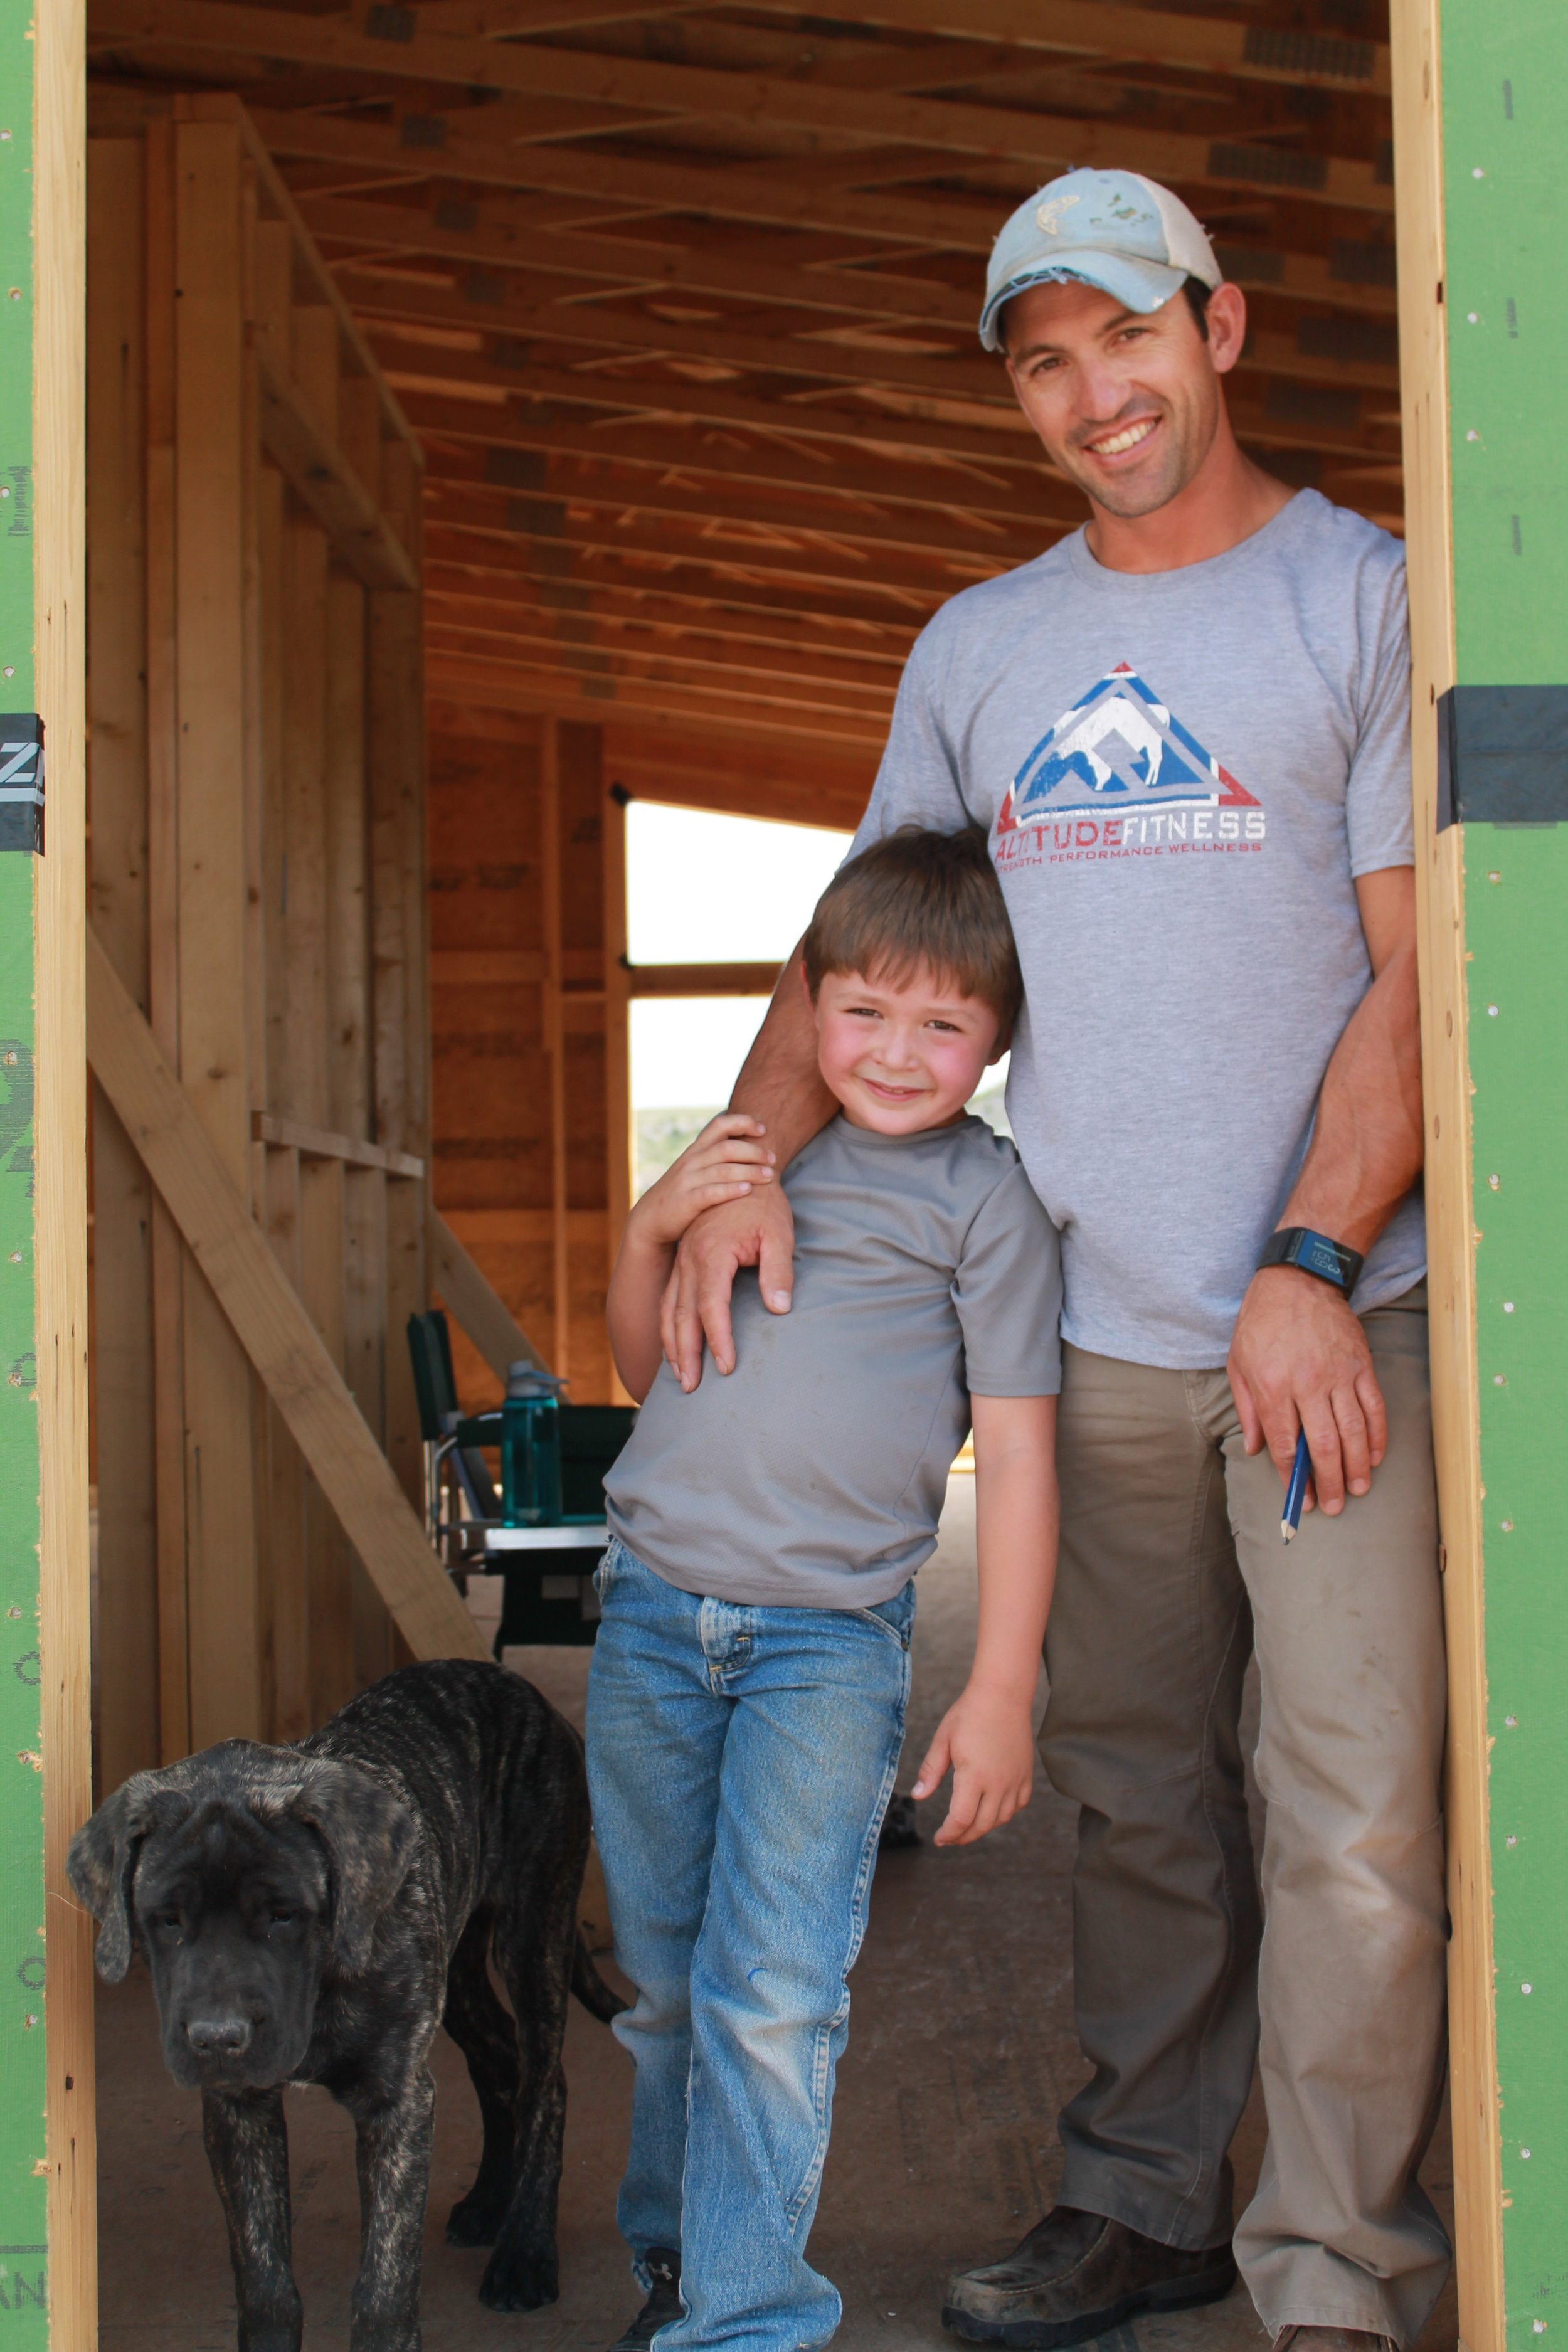 Cory Toye, his son Joe, and their dog Clementine (Tiny) on the Crowheart site.